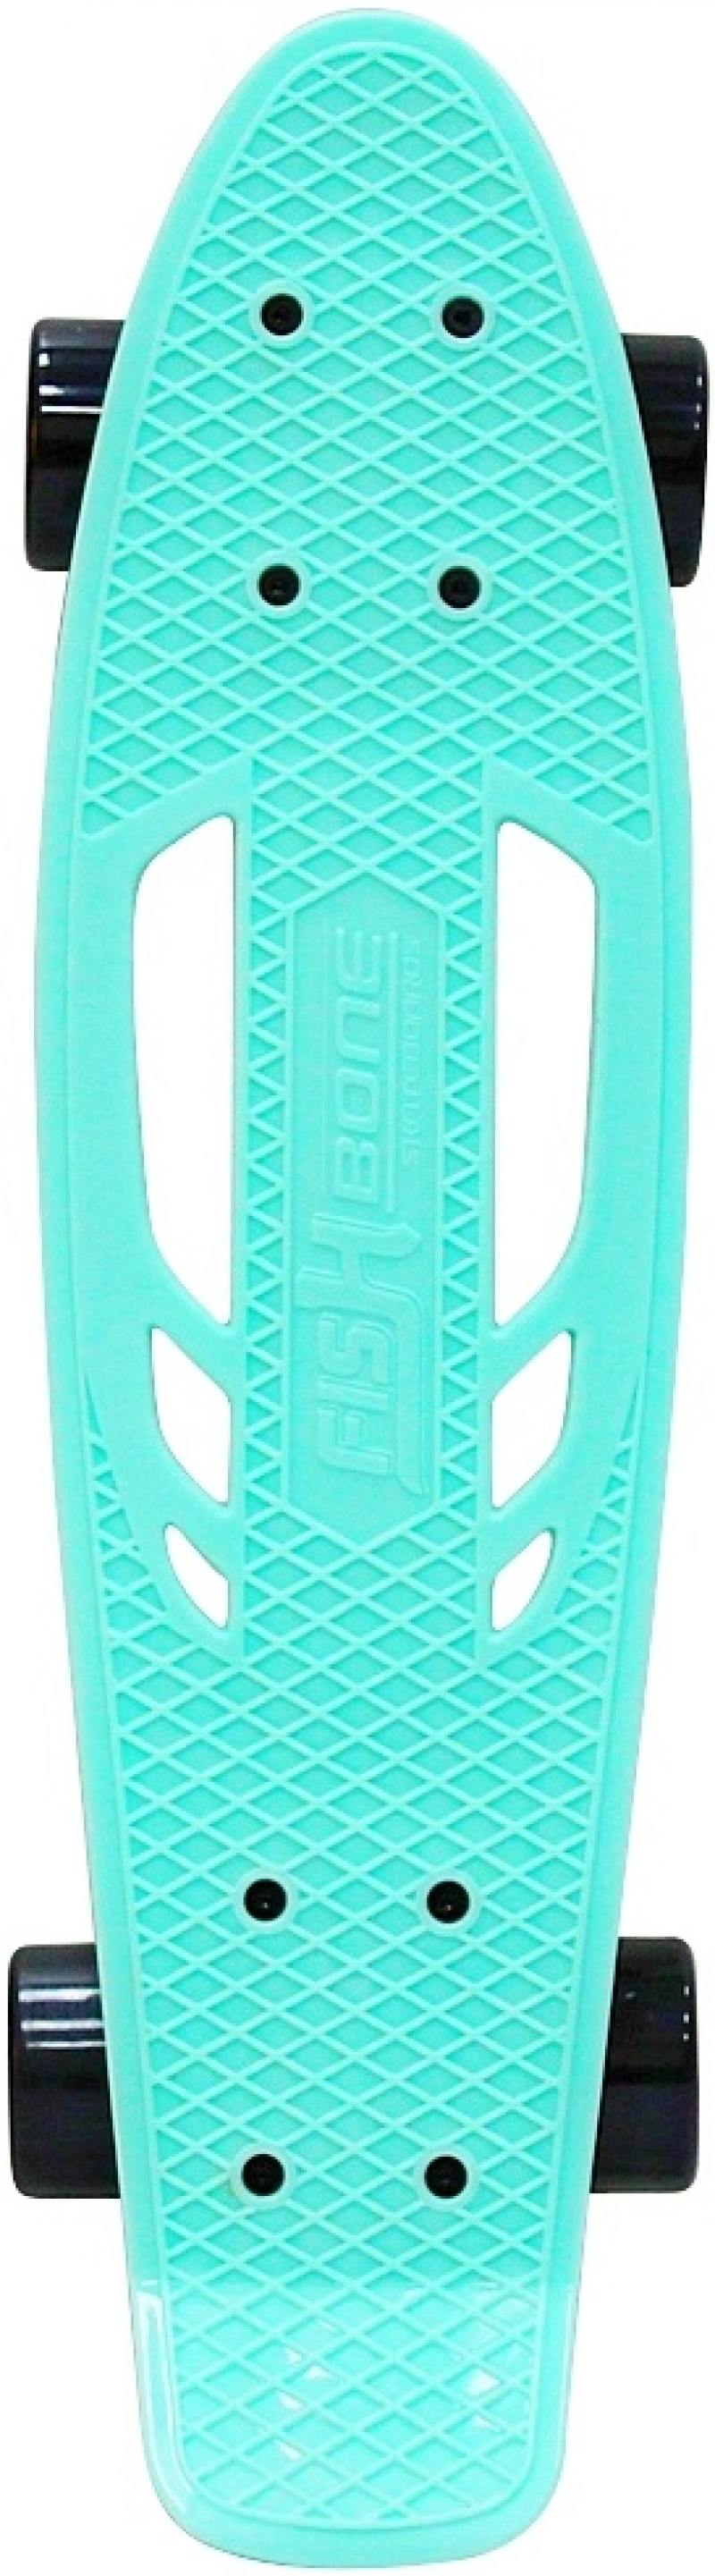 Скейтборд Y-SCOO Skateboard Fishbone с ручкой 22 RT винил 56,6х15 с сумкой AQUA/black 405-A rt 405 a скейтборд skateboard fishbone с ручкой 22 винил 56 6х15 с сумкой aqua black